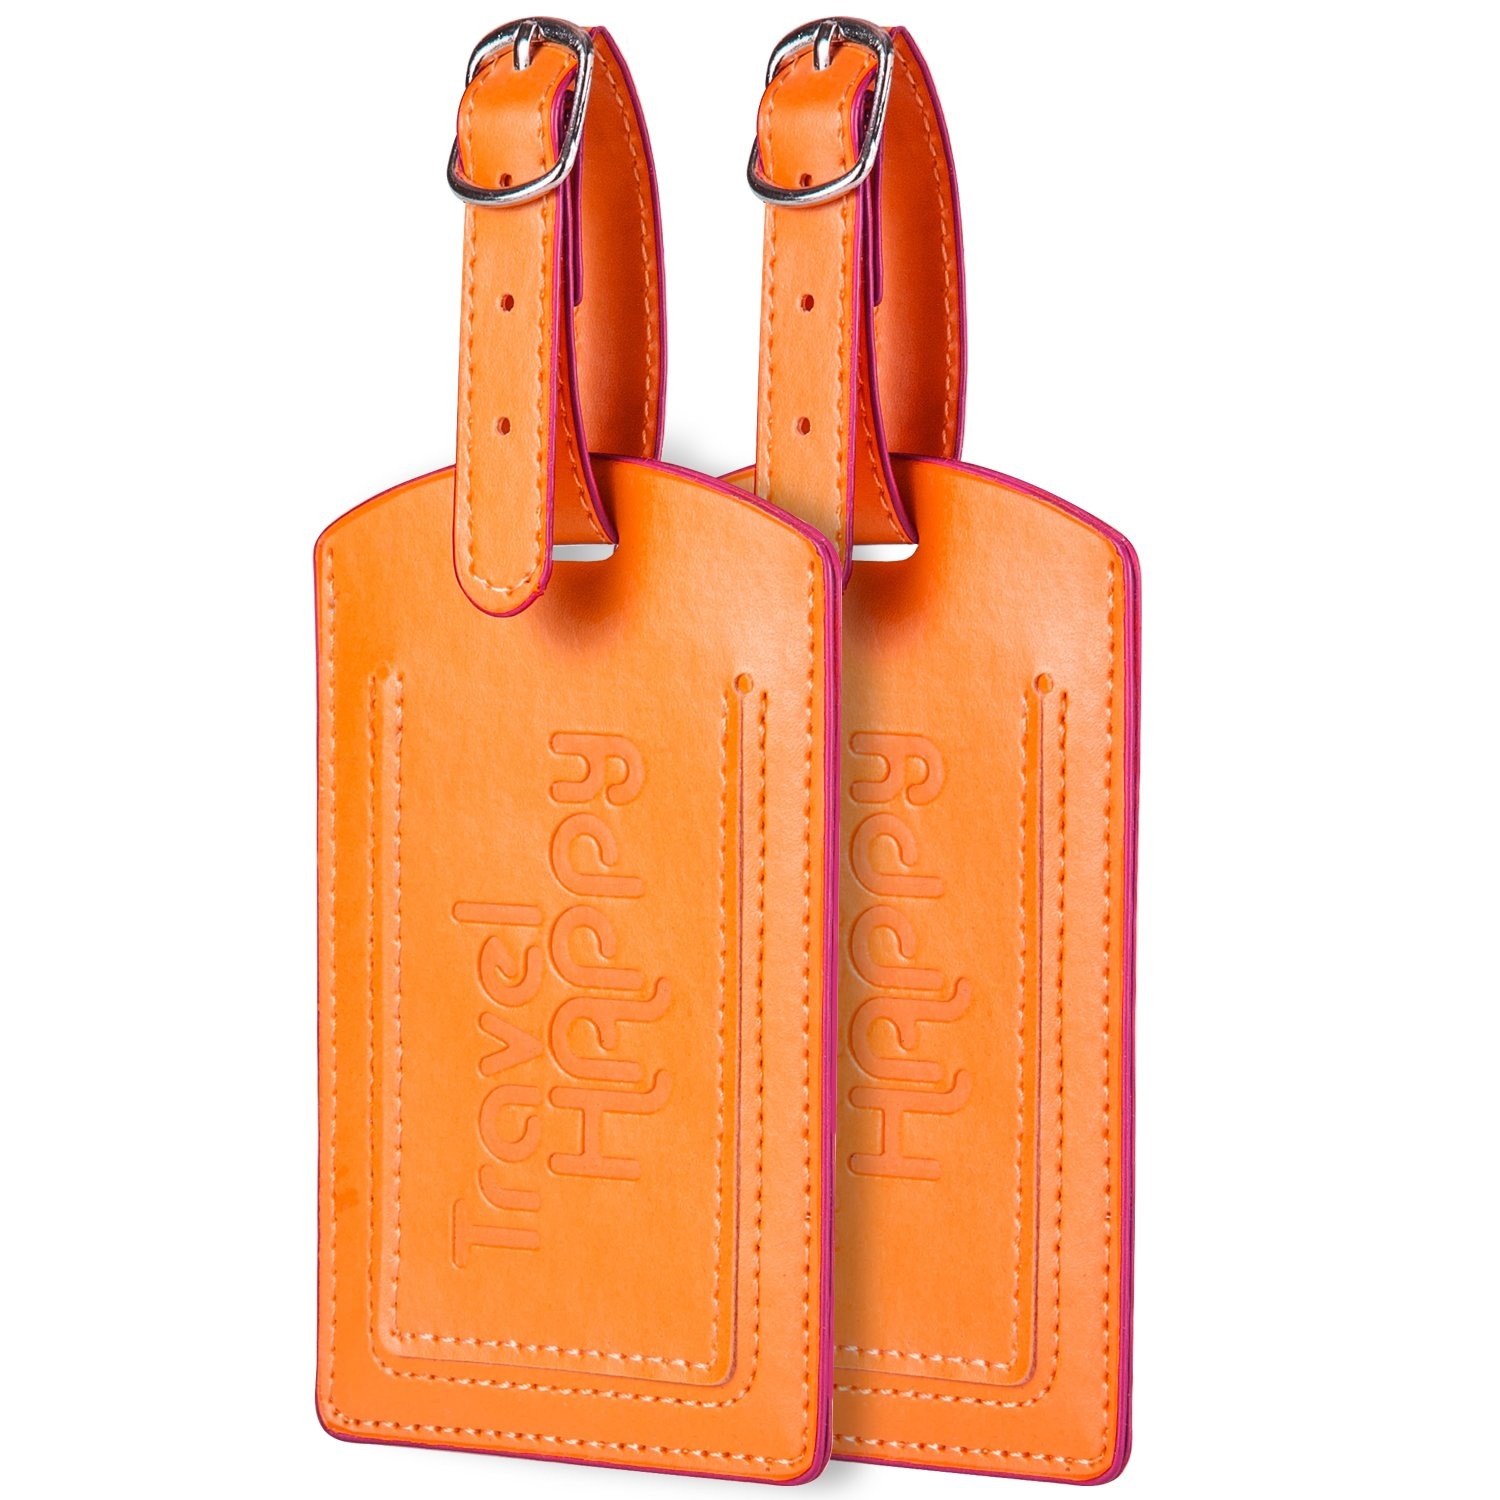 Bellerina Luggage Tags. Set of 2. Easy To Spot Suitcase Labels. Happy Orange